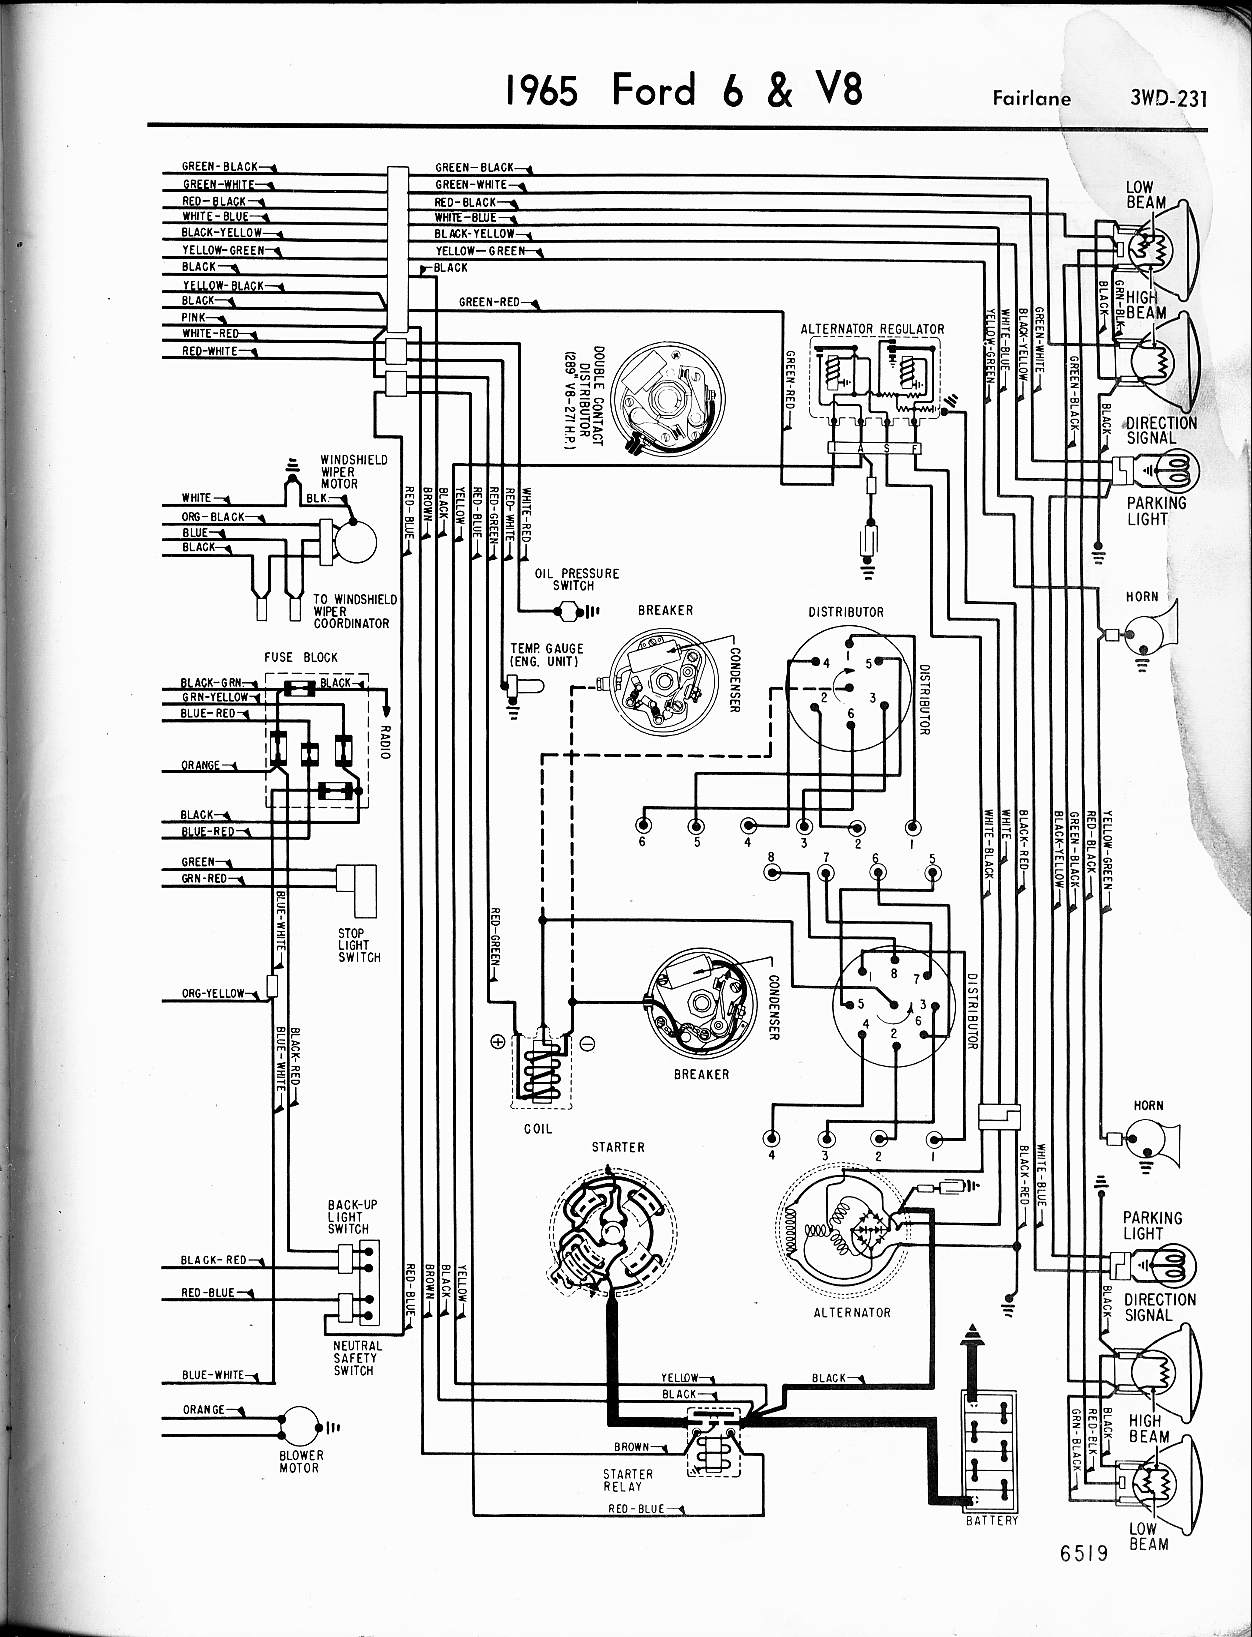 1966 ford fairlane wiring diagram 57-65 ford wiring diagrams #6